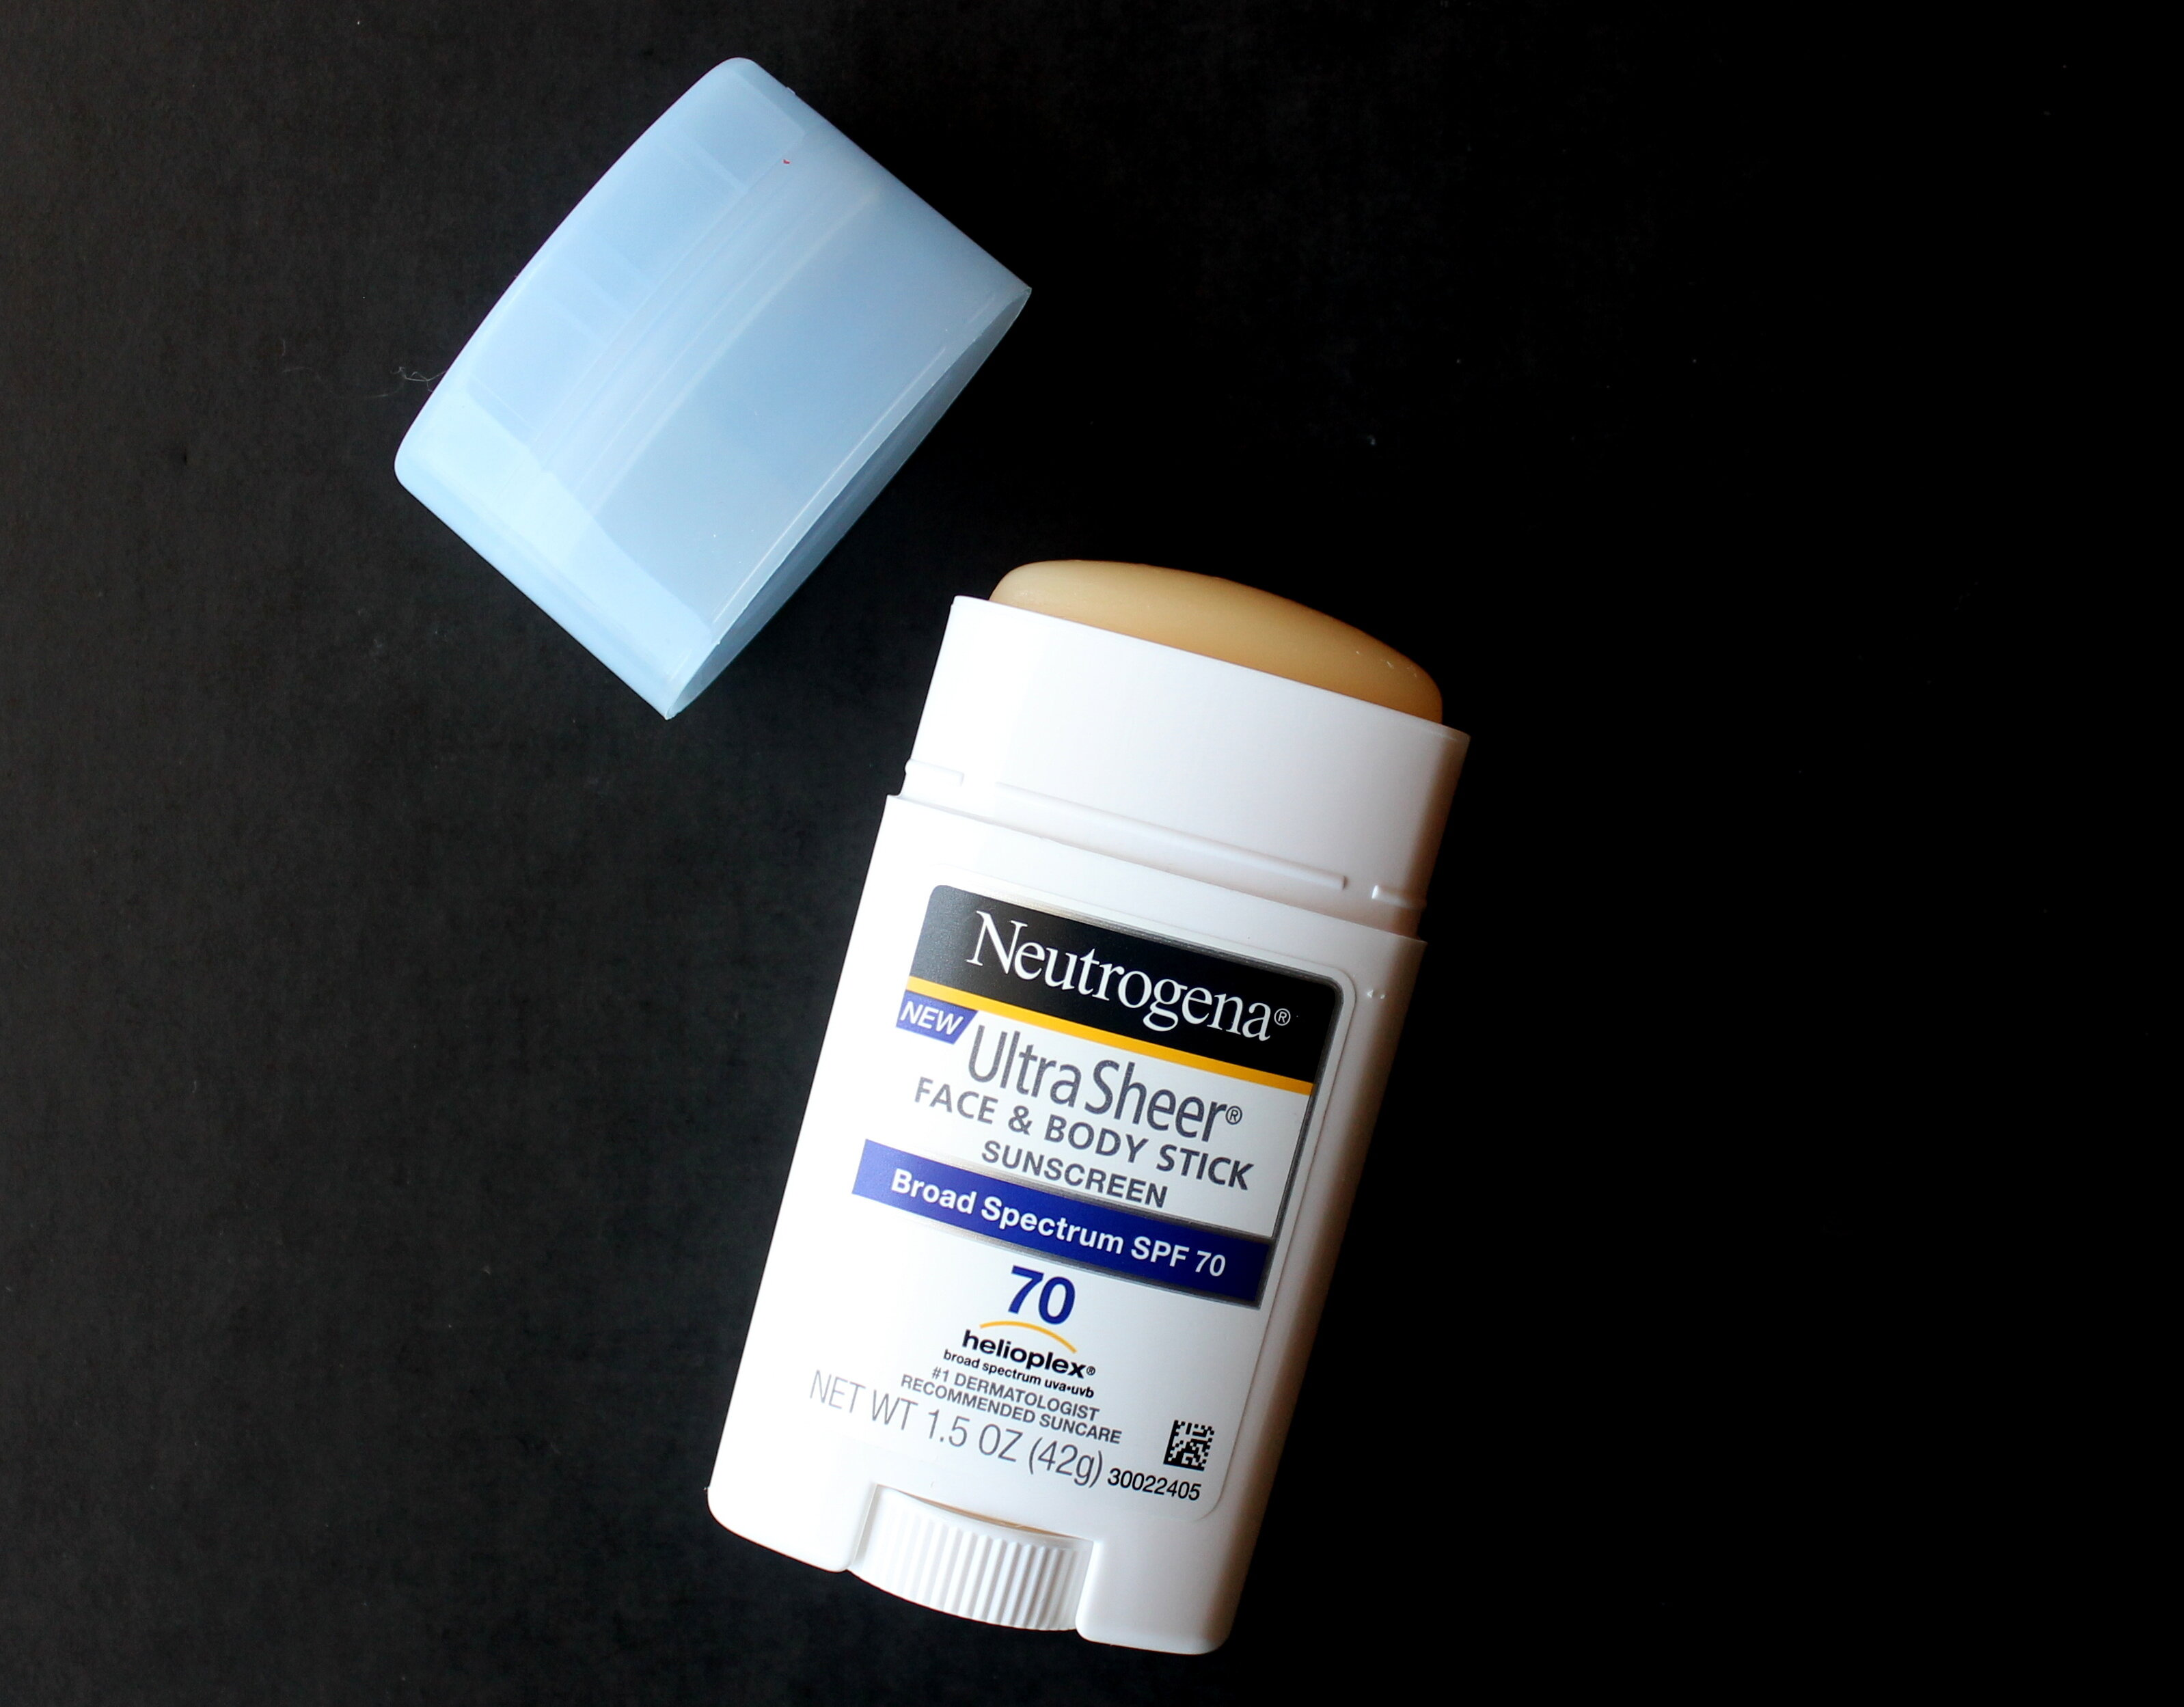 Review kem chống nắng dạng thỏi Neutrogena Ultra Sheer Face and Body Stick sunscreen SPF 70